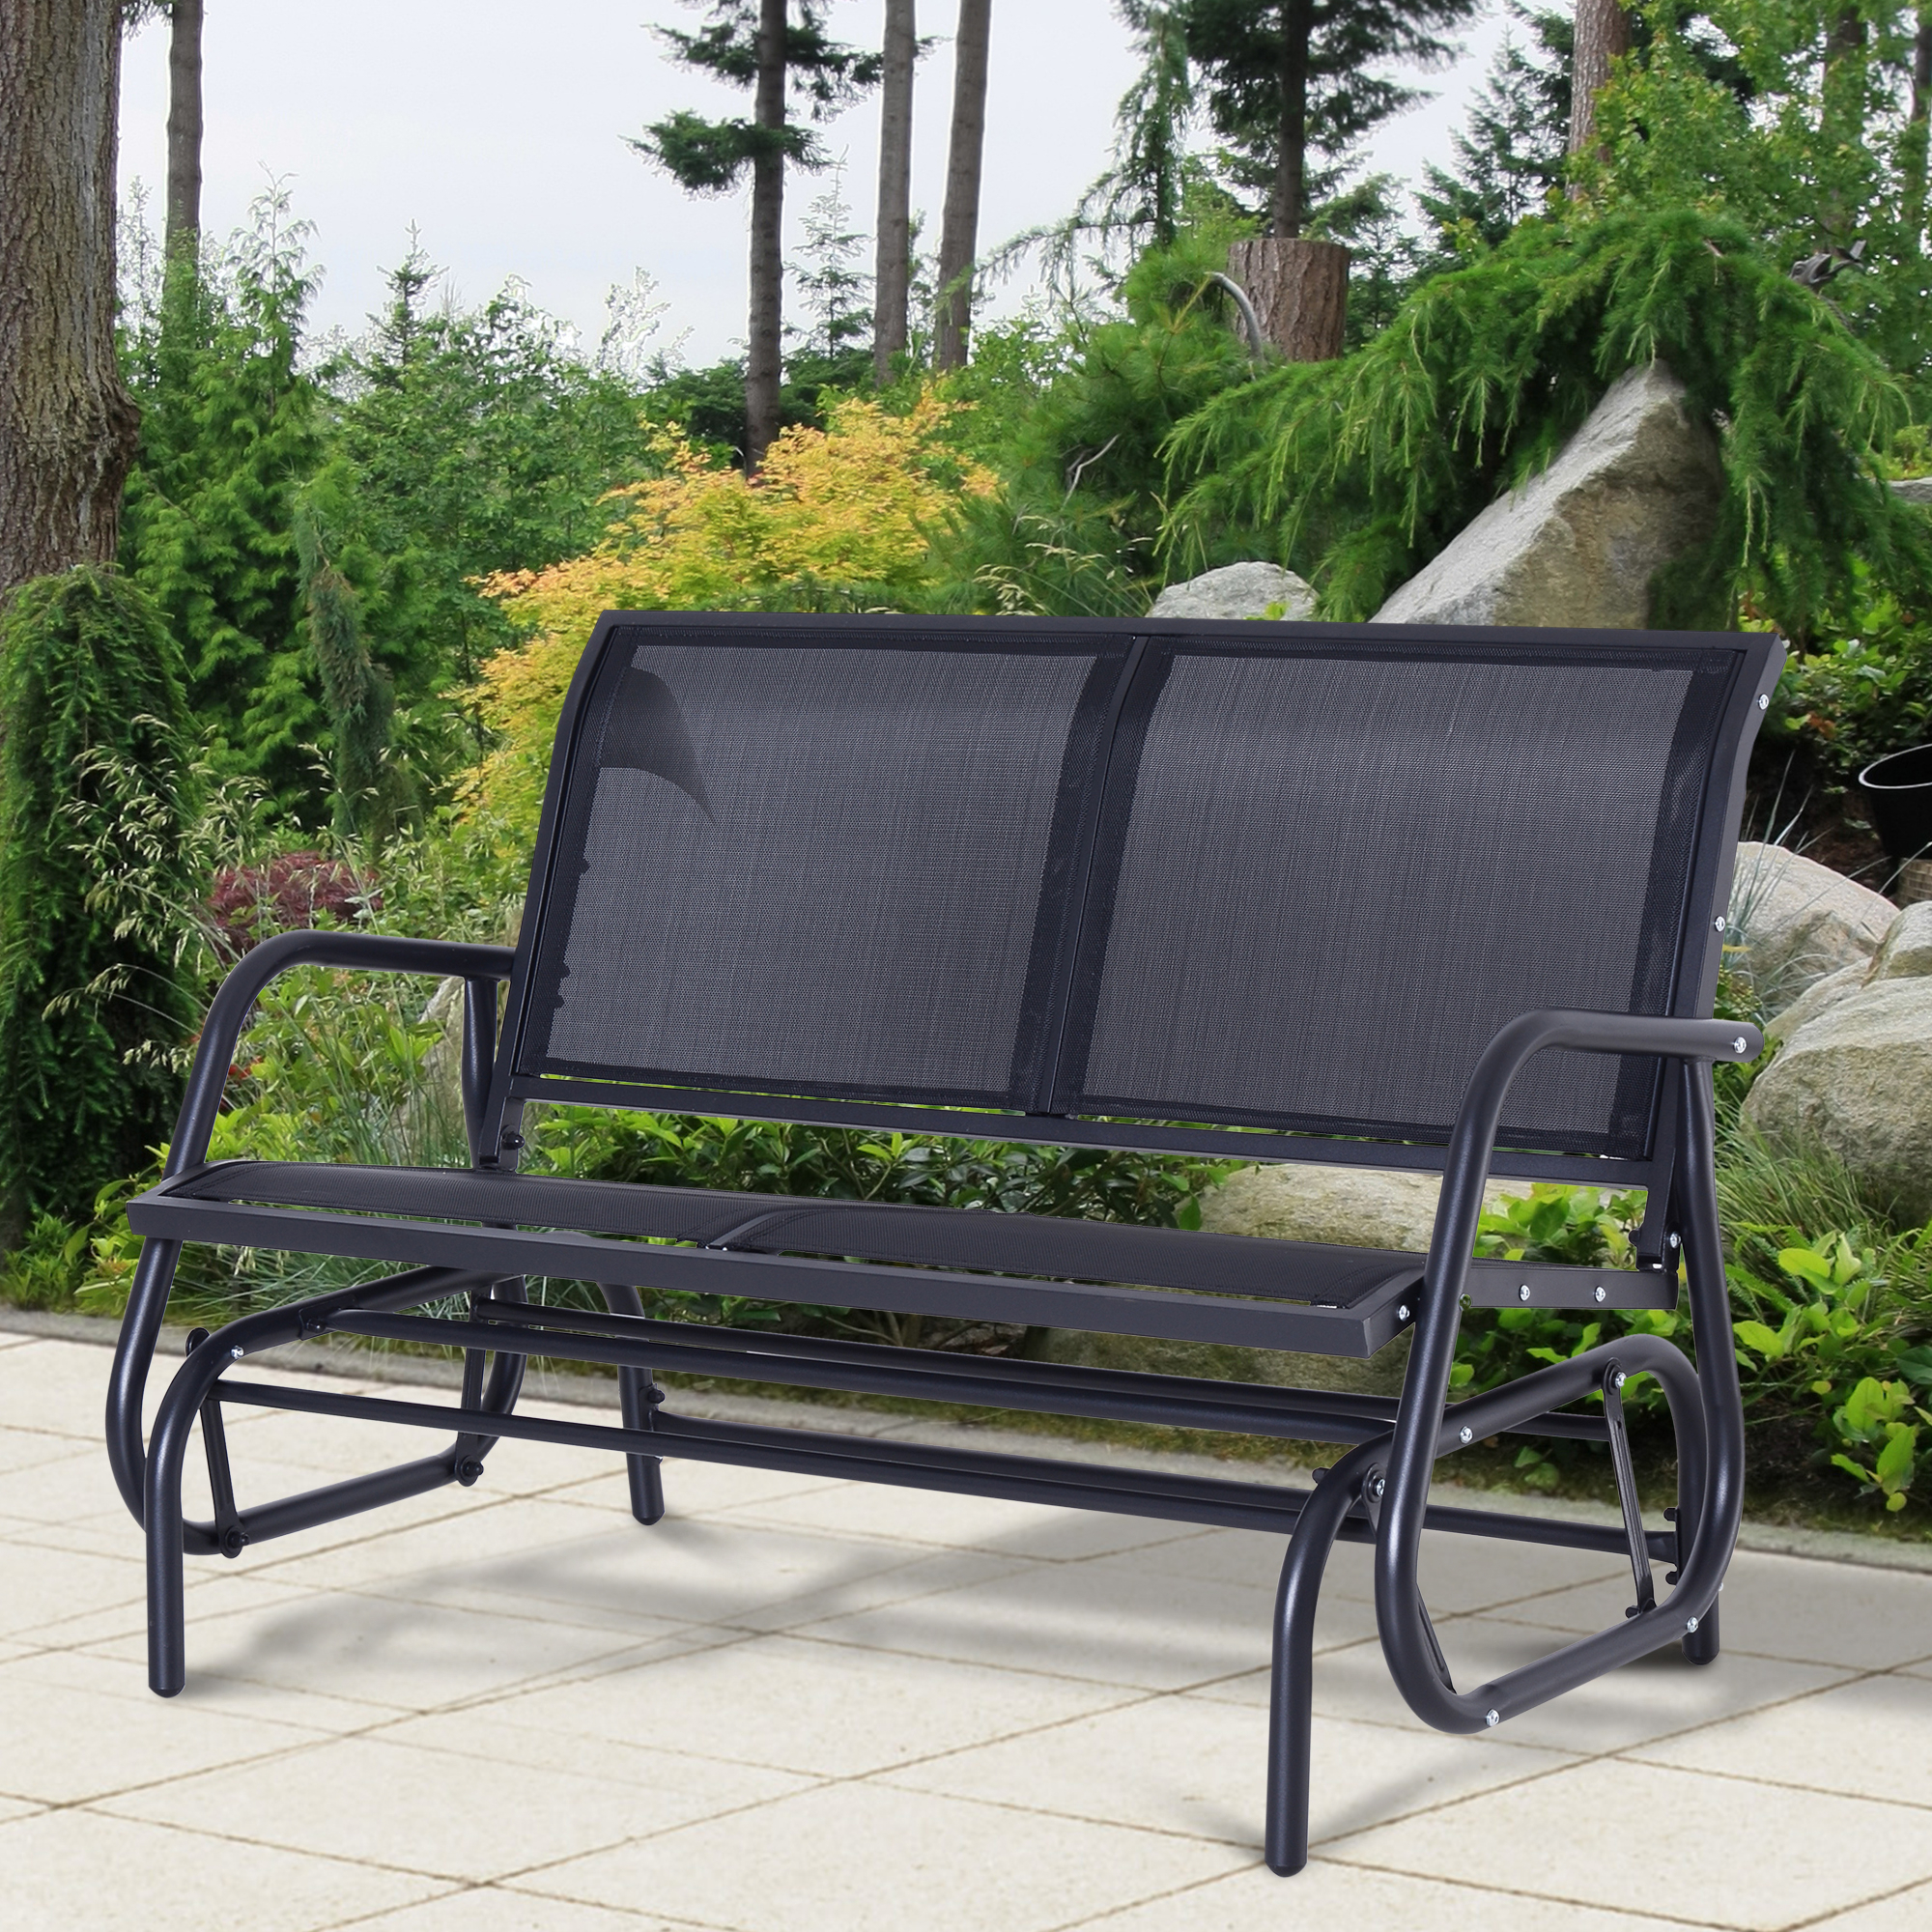 Well Known Details About Outsunny Patio Garden Glider Bench 2 Person Double Swing  Chair Rocker Deck Black Pertaining To Black Outdoor Durable Steel Frame Patio Swing Glider Bench Chairs (View 29 of 30)